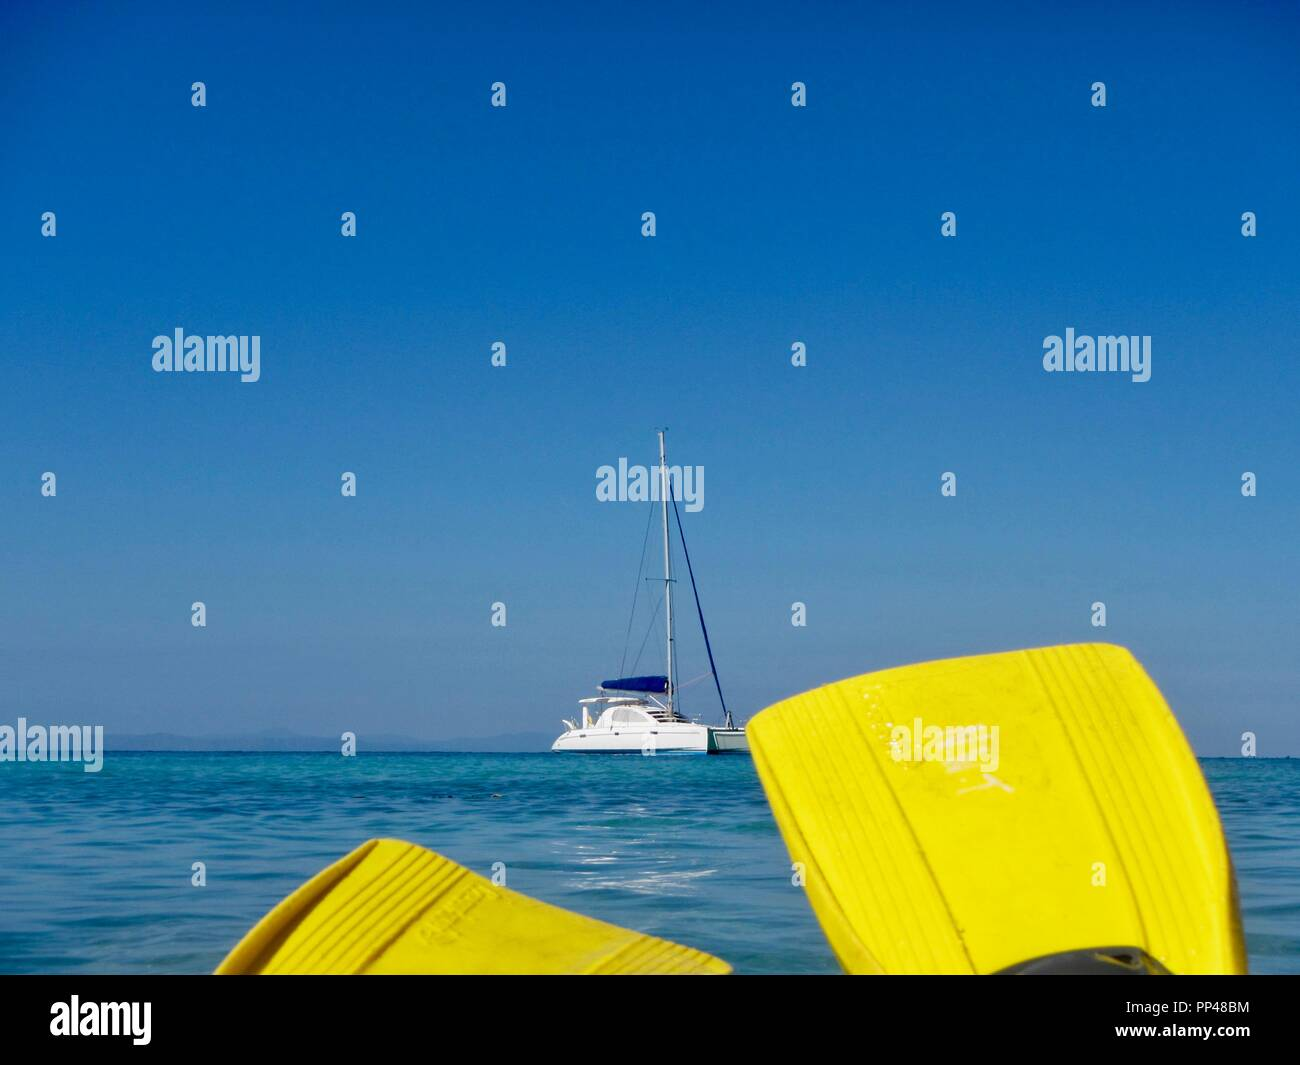 Snorkelling in the Caribbean with a white catamaran in the background - Stock Image